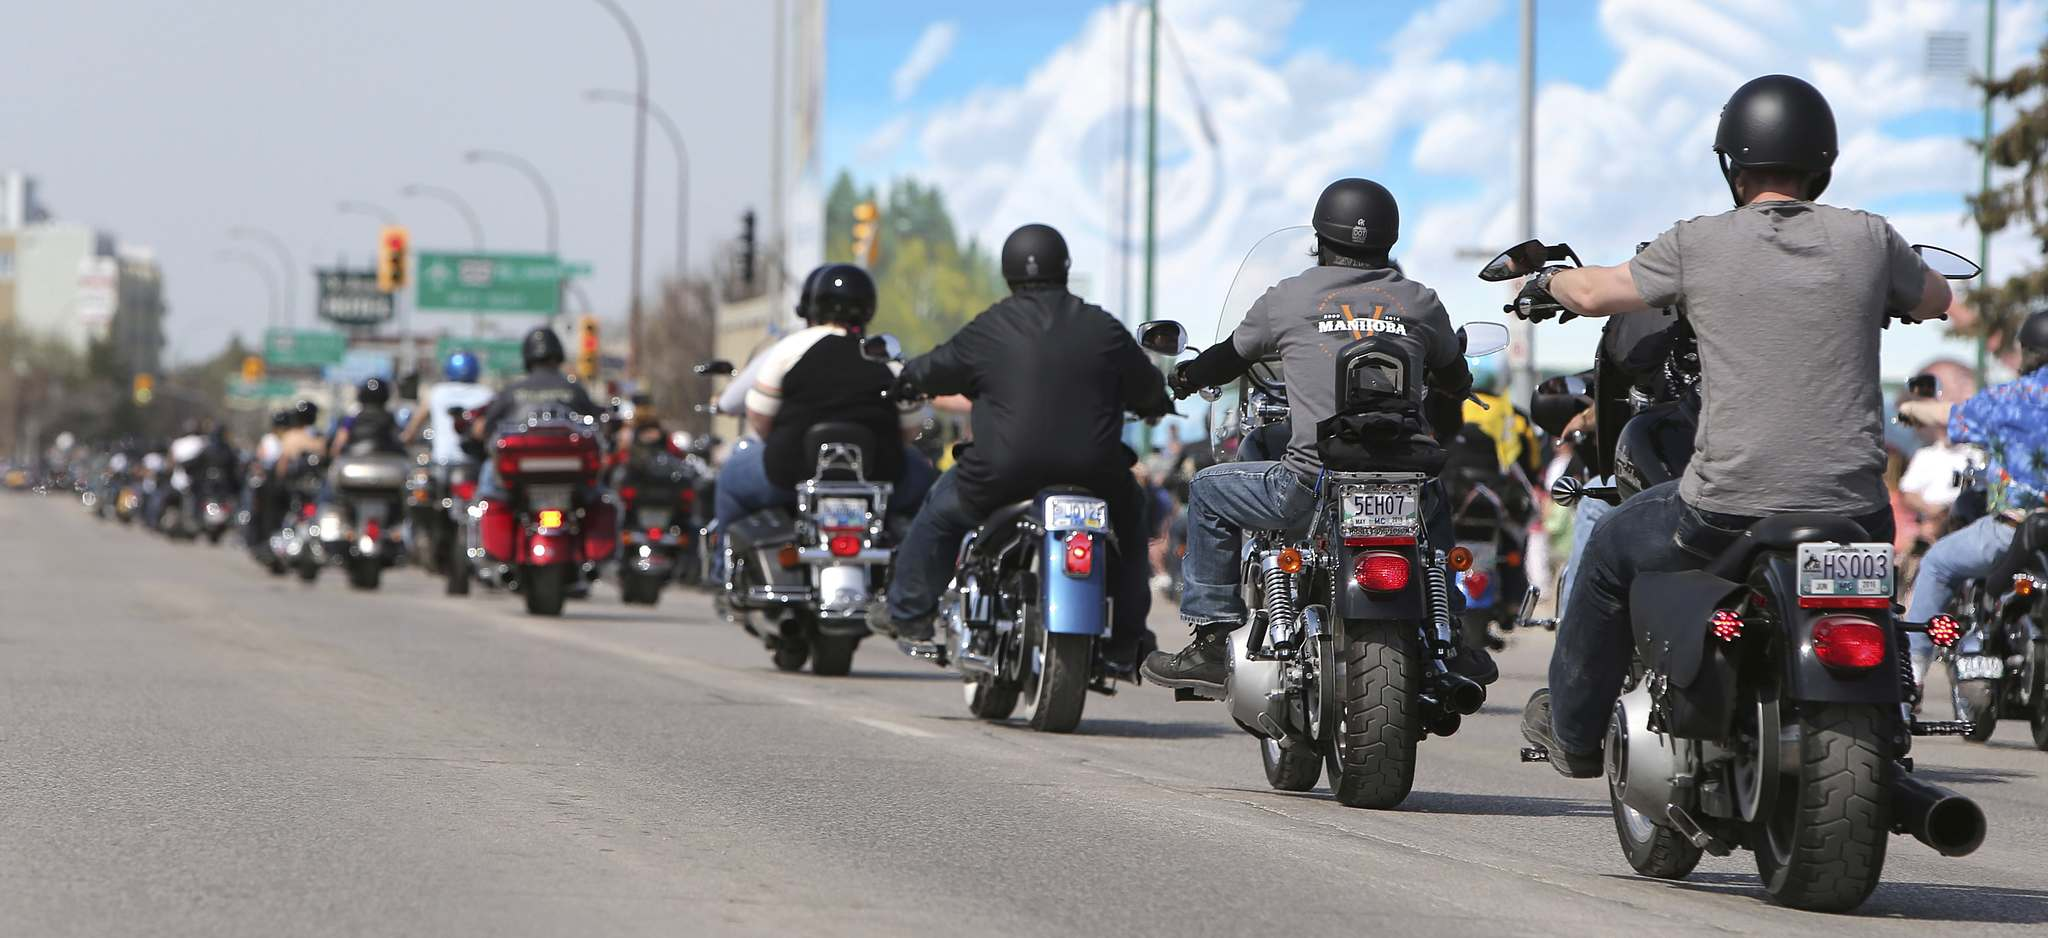 Jason Halstead / Winnipeg Free Press FilesRiders participate in the Motorcycle Ride for Dad.